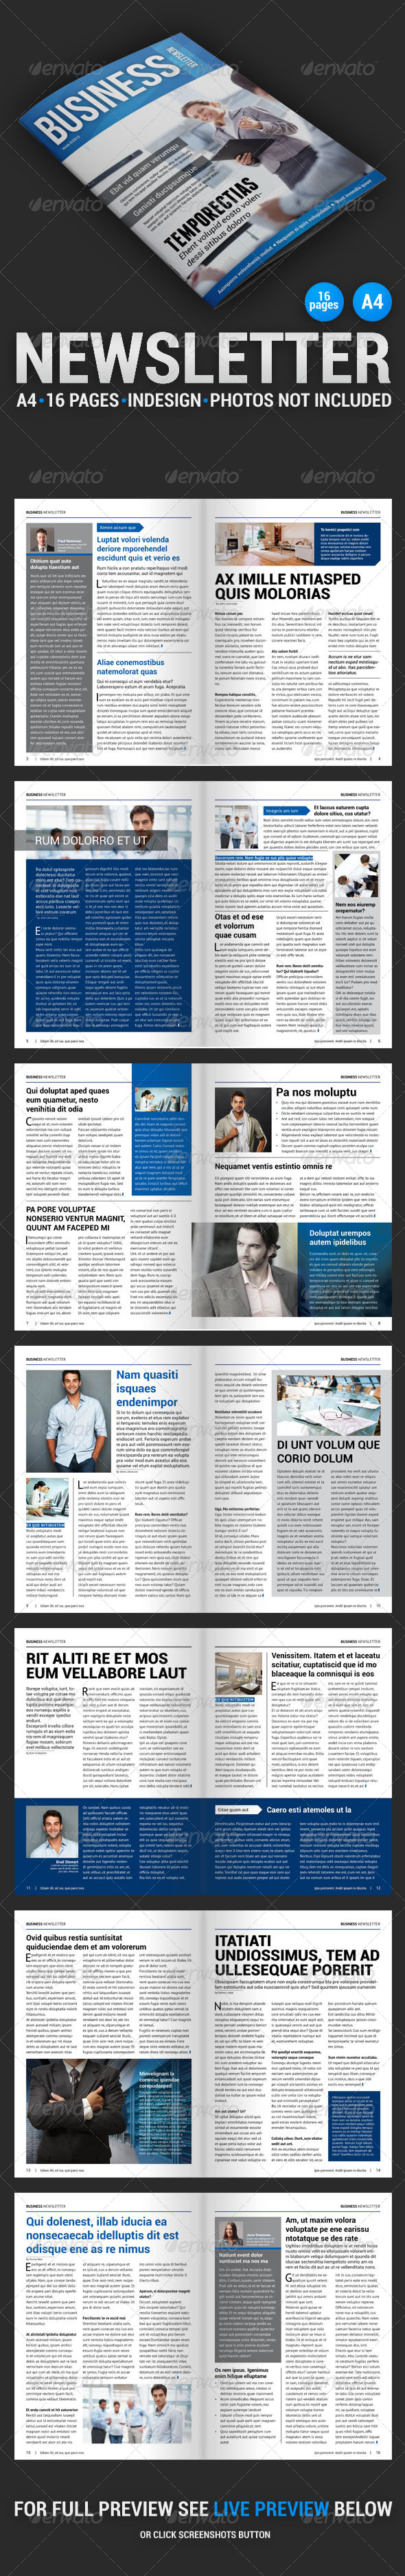 Business Newsletter 1 - Newsletters Print Templates